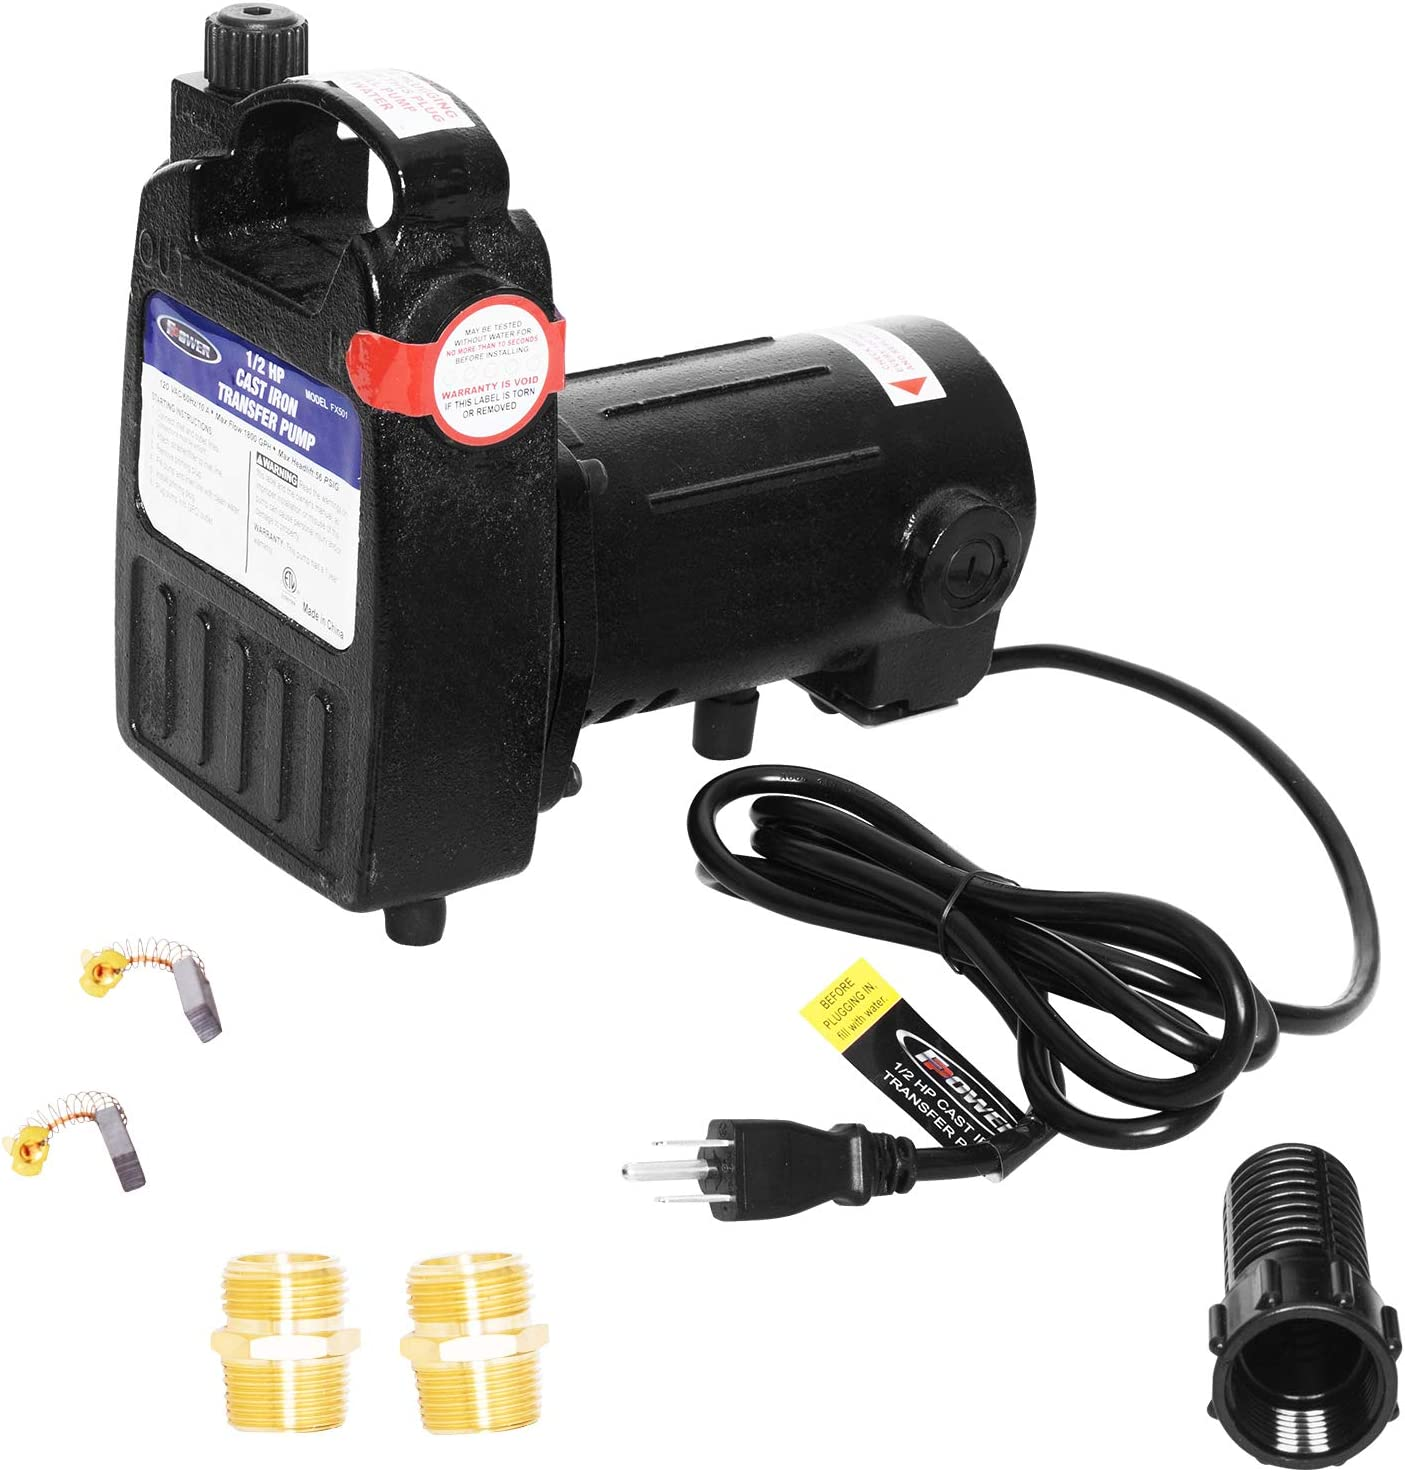 """FPOWER 115V 1/2 HP 1500 GPH High Pressure Cast Iron Casing Utility Portable Water Transfer Pump With Suction Strainer and Brass Connectors For Use With Standard 3/4"""" Hose"""